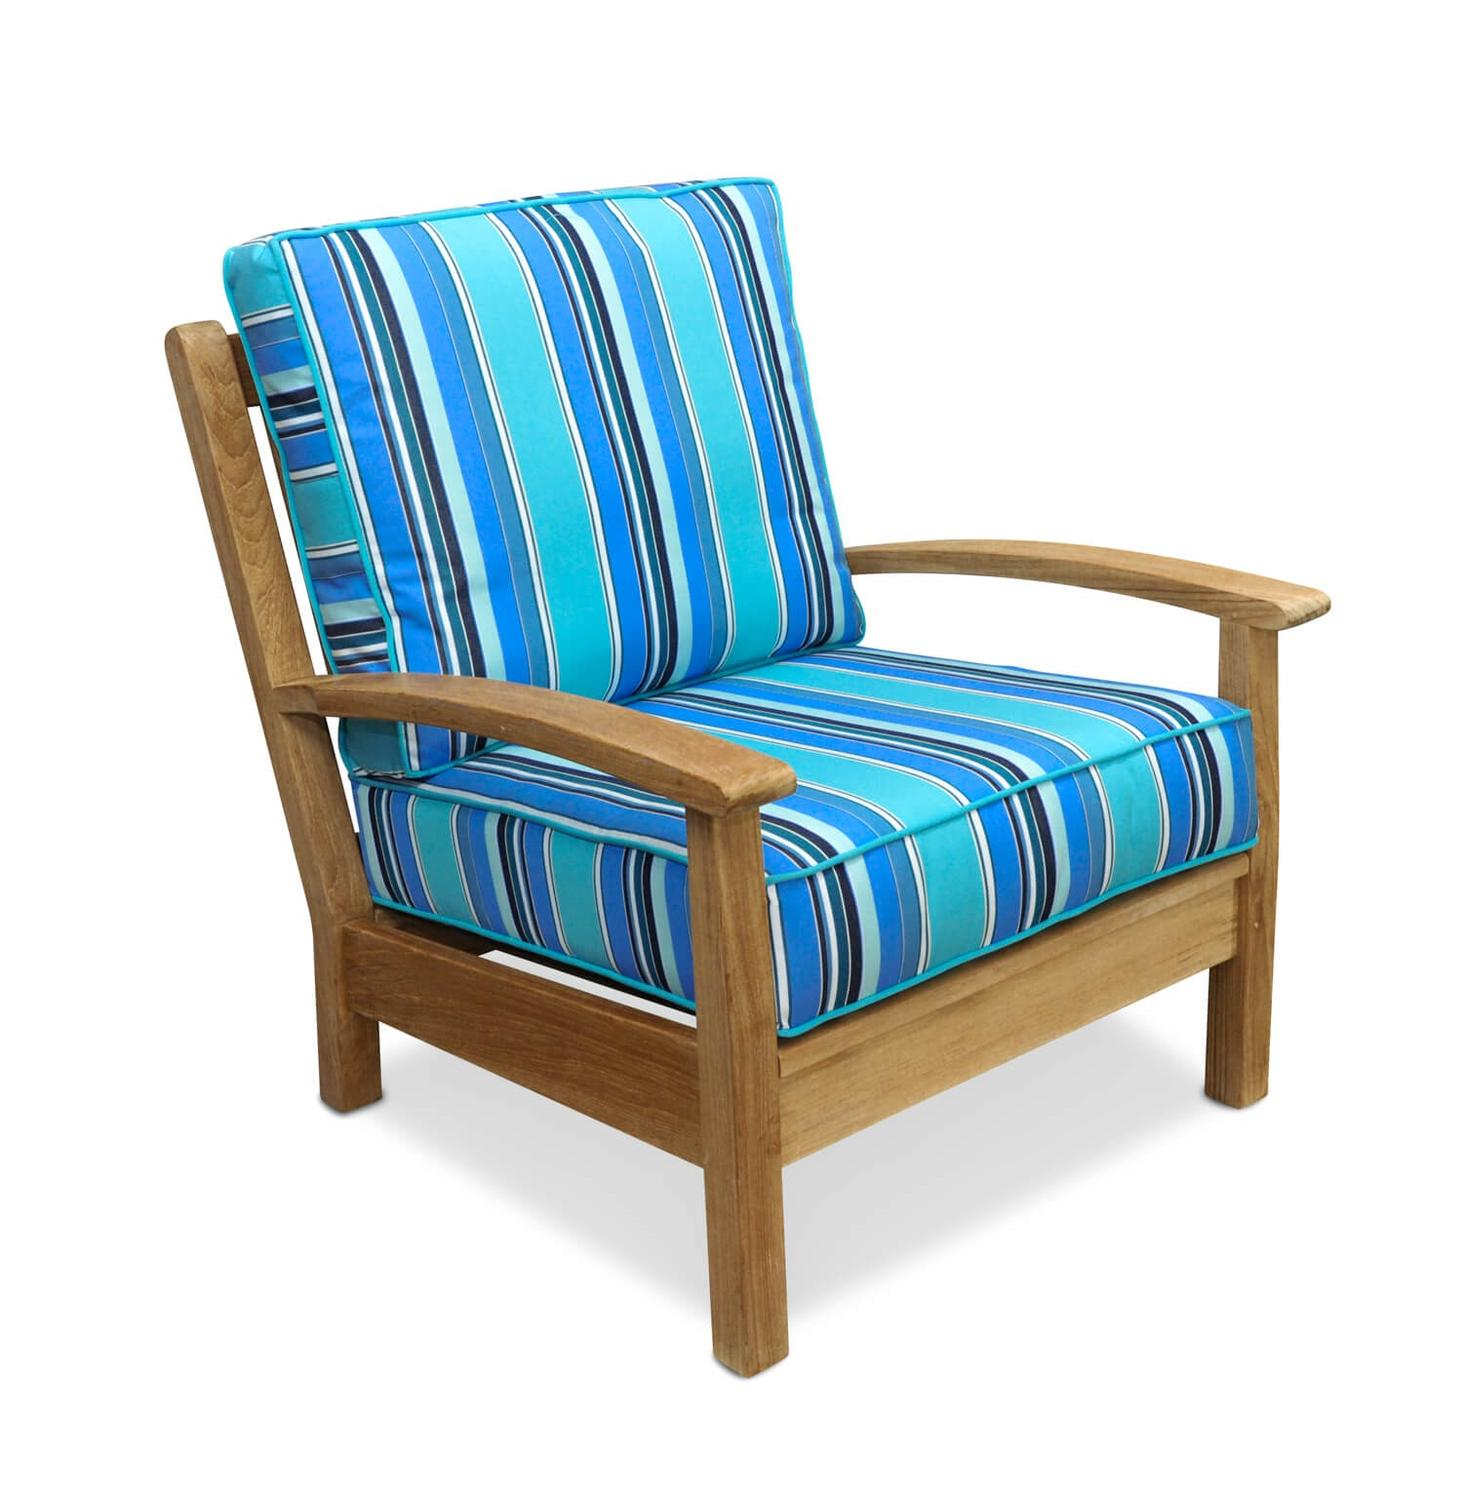 34 Natural Teak Deep Seating Outdoor Patio Lounge Chair With Blue